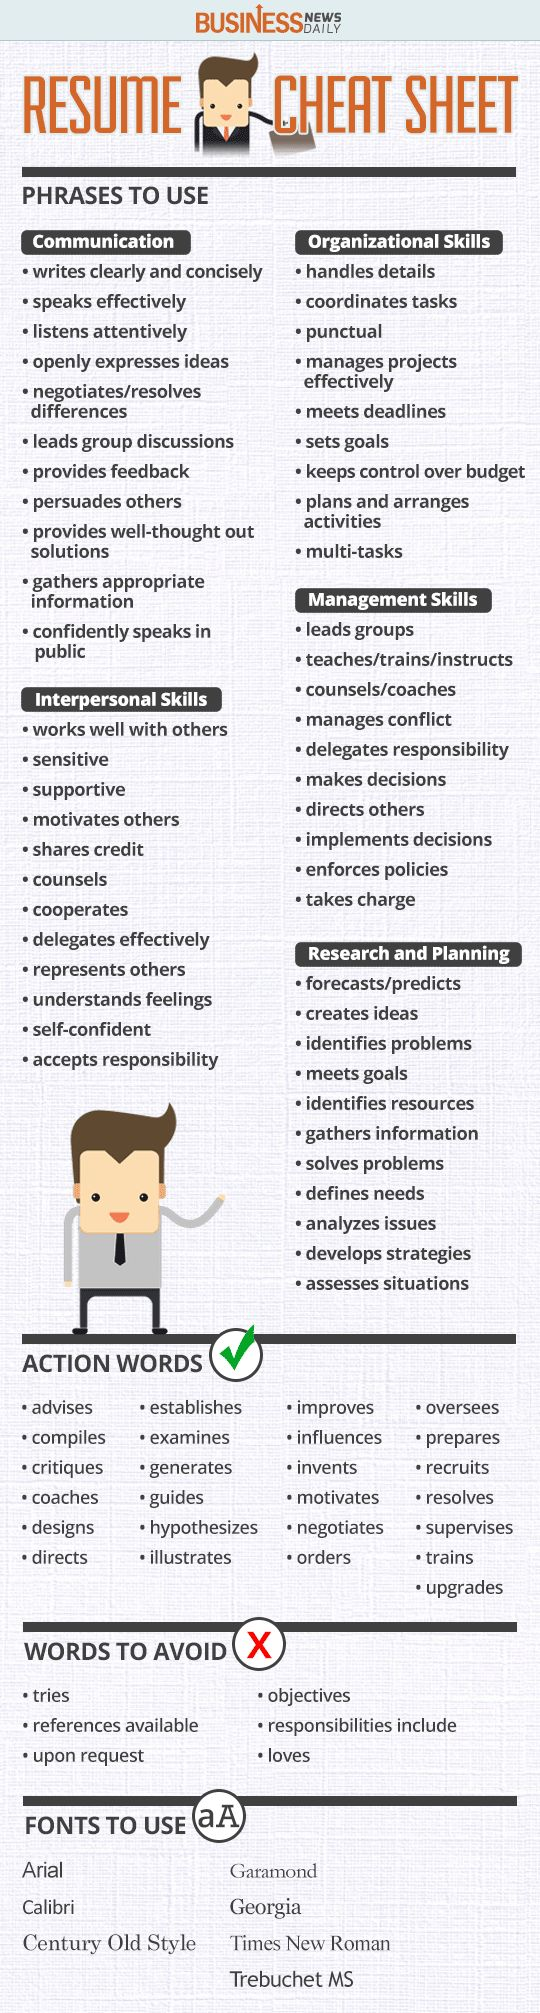 Opposenewapstandardsus  Scenic  Ideas About Resume On Pinterest  Cv Format Resume Cv And  With Luxury Resume Cheat Sheet Infographic Andrews Almost Done With A Complete Unit On Employment Which With Beauteous Business Resume Cover Letter Also Environmental Engineer Resume In Addition Resume Power Phrases And Strong Communication Skills Resume As Well As List Of Skills On Resume Additionally How To Write References For A Resume From Pinterestcom With Opposenewapstandardsus  Luxury  Ideas About Resume On Pinterest  Cv Format Resume Cv And  With Beauteous Resume Cheat Sheet Infographic Andrews Almost Done With A Complete Unit On Employment Which And Scenic Business Resume Cover Letter Also Environmental Engineer Resume In Addition Resume Power Phrases From Pinterestcom